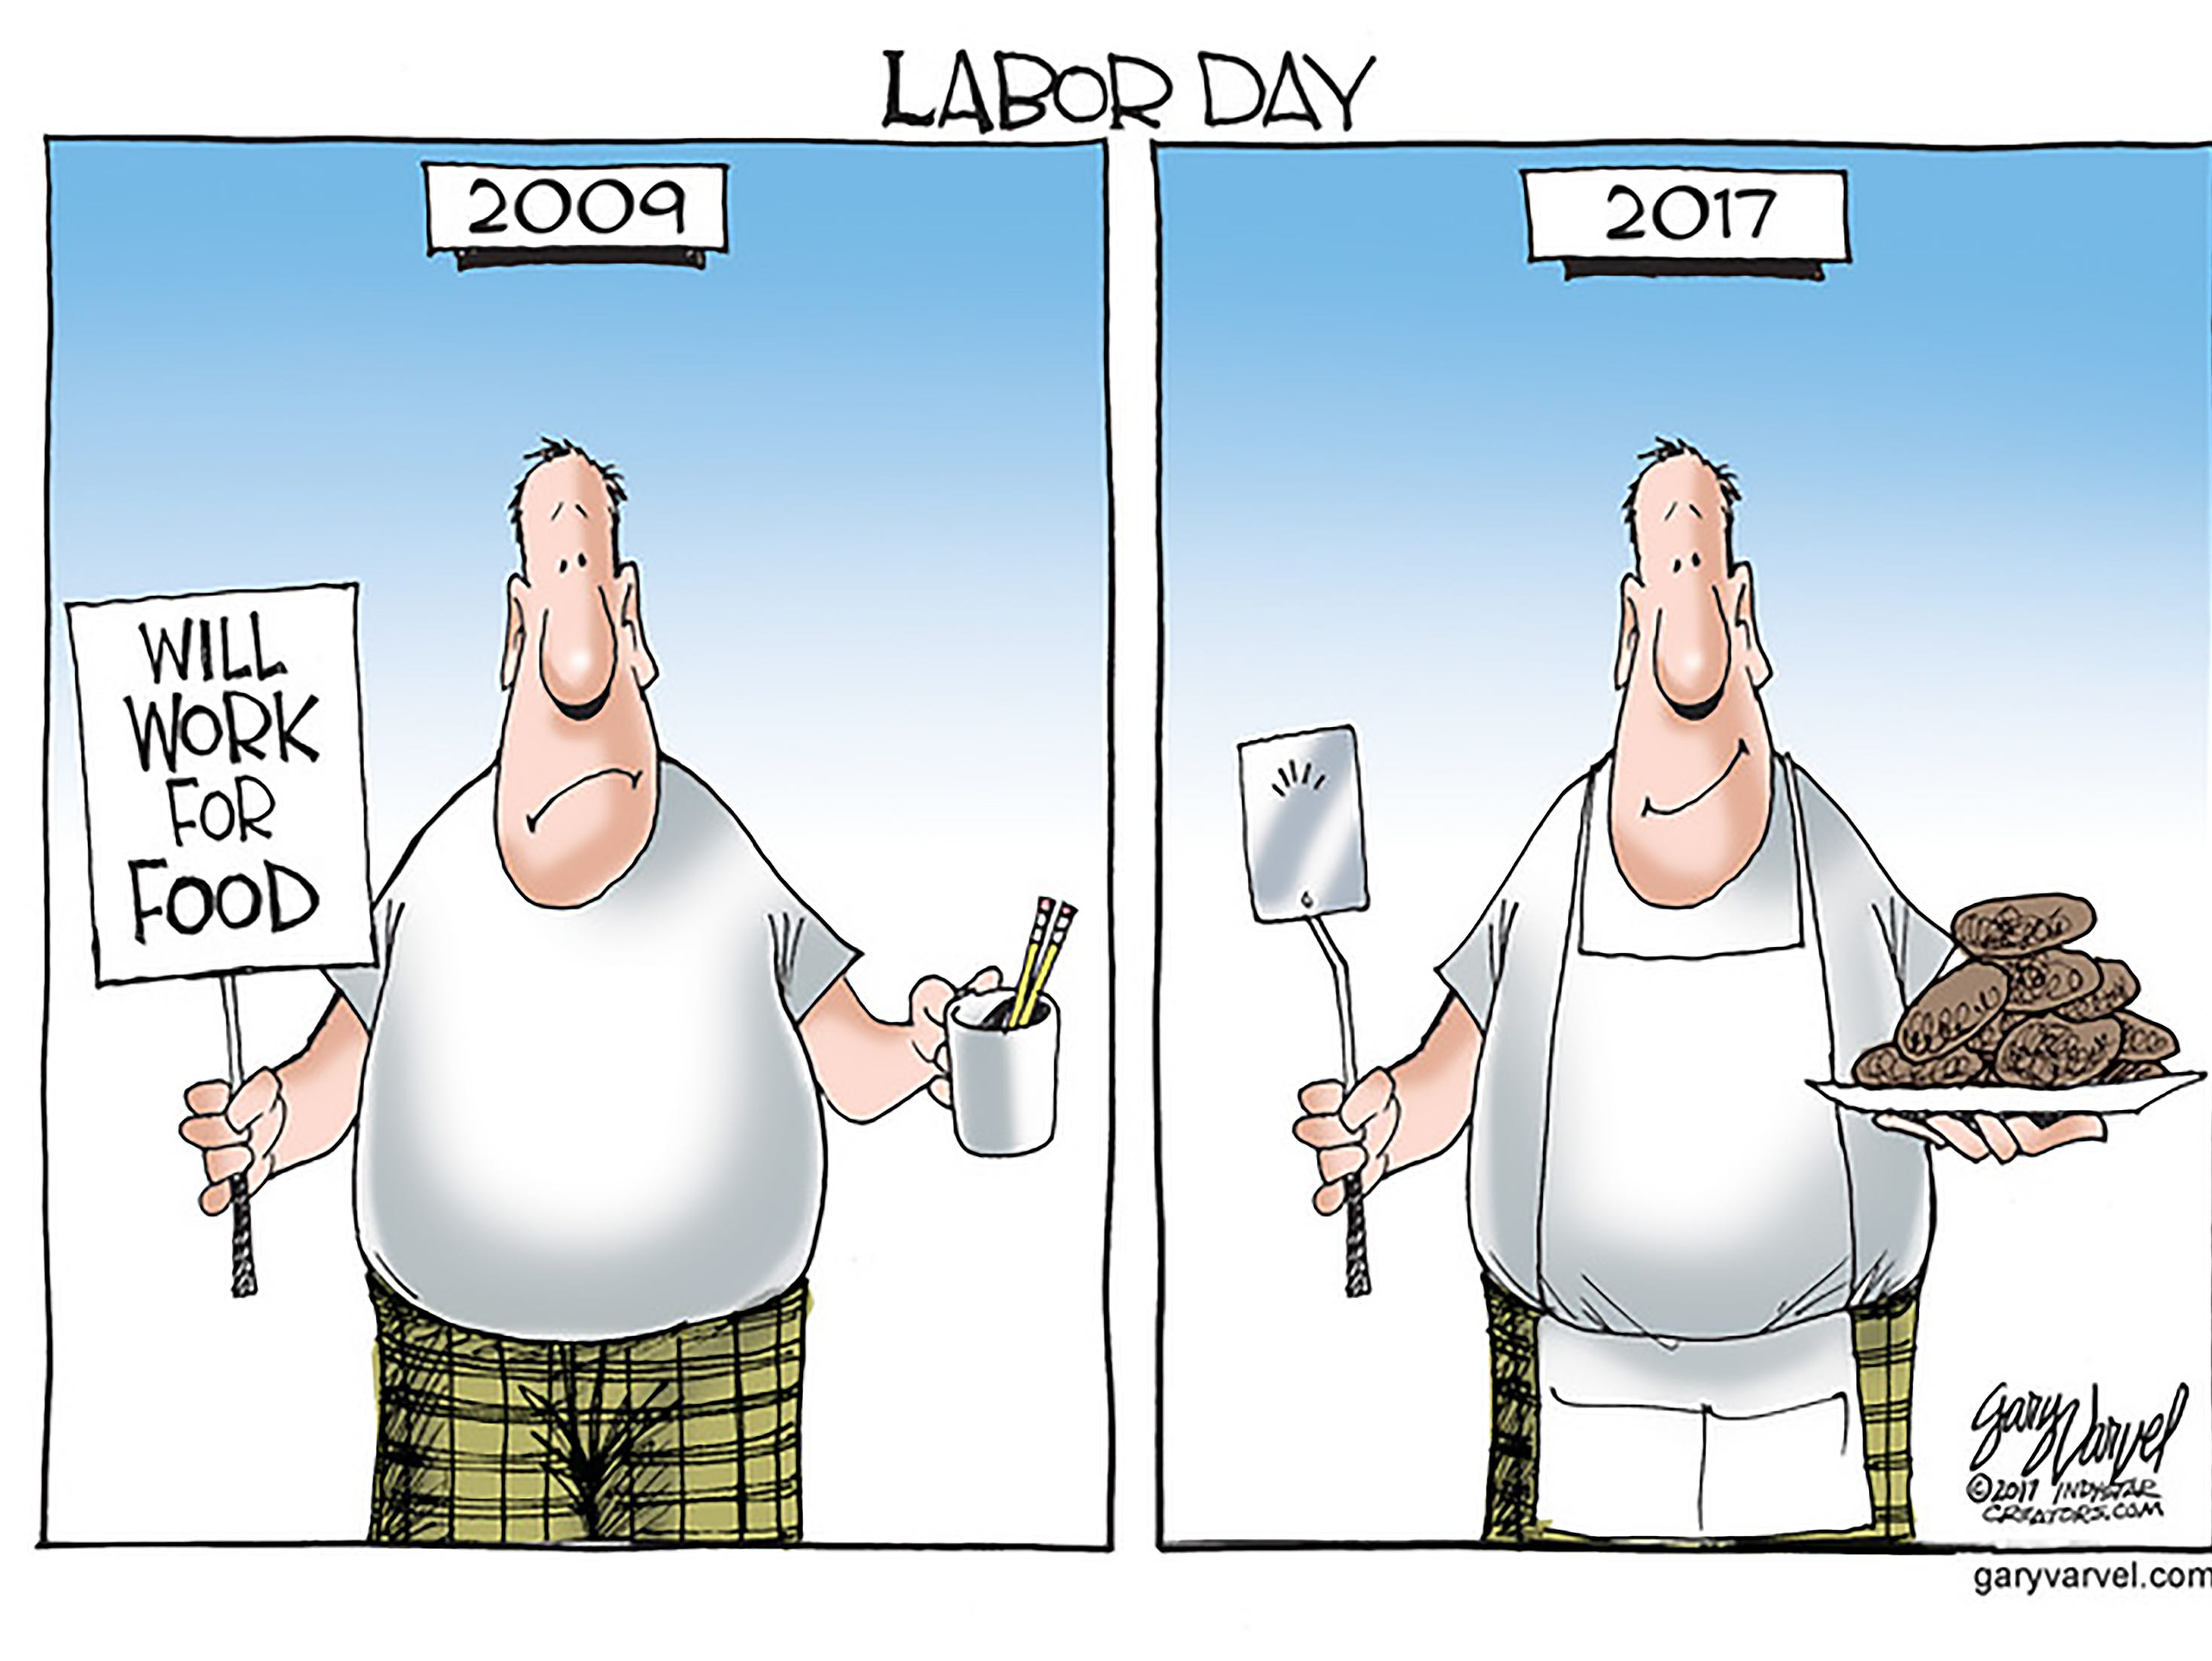 First published for Labor Day 2017. The cartoonist's homepage, indystar.com/opinion/varvel